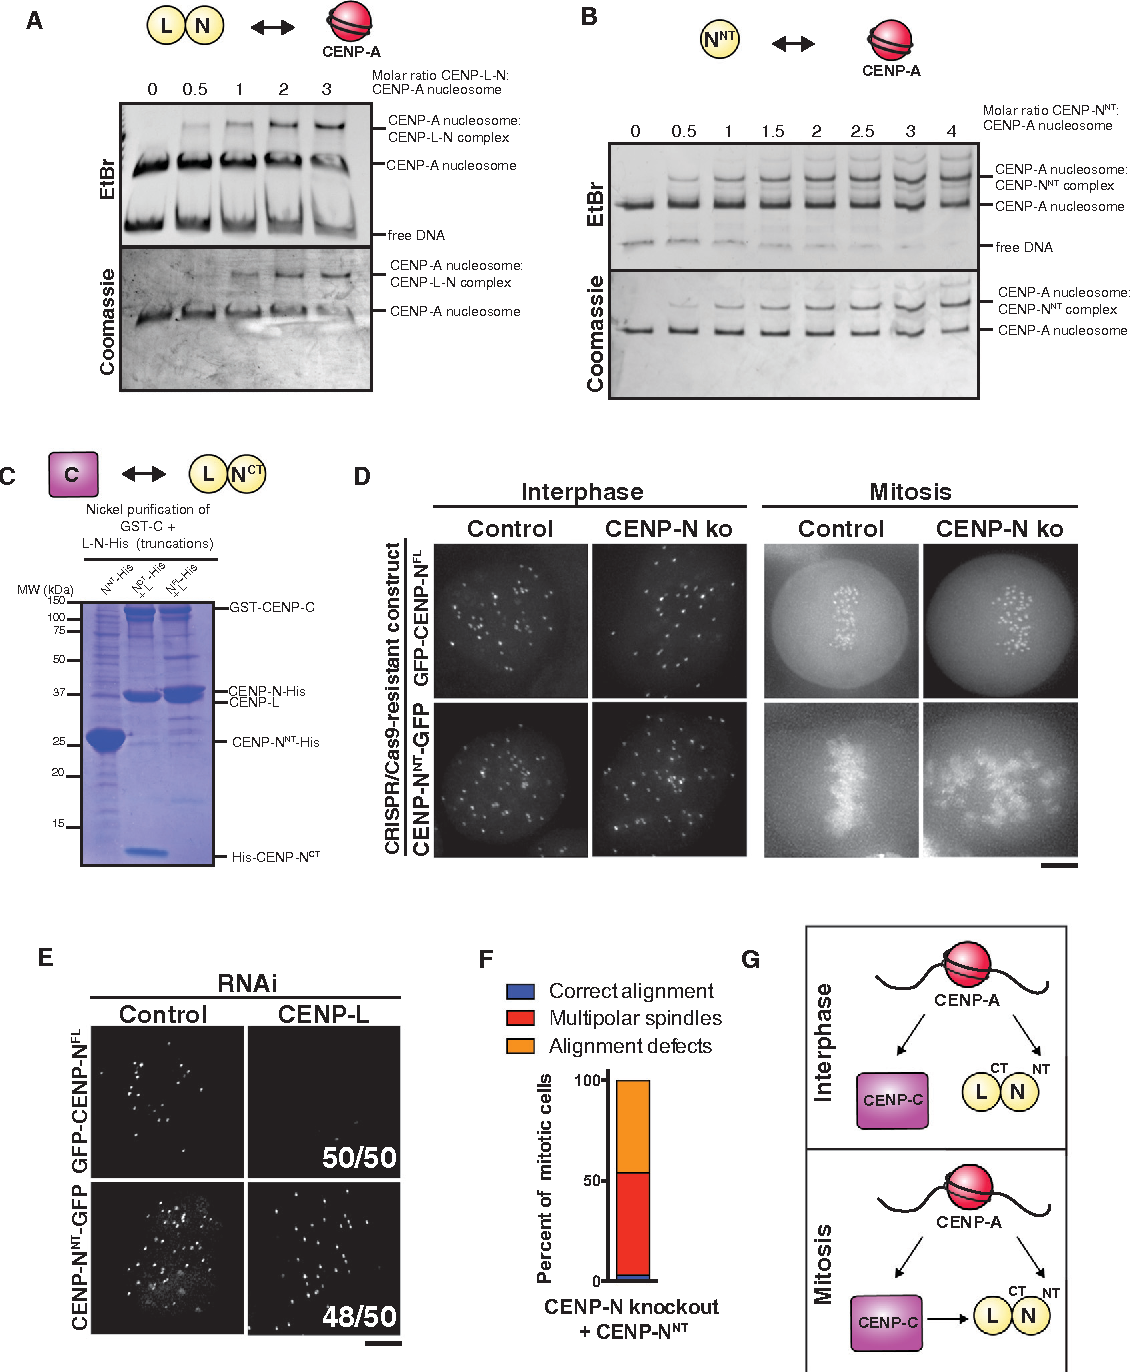 Figure 6. Interactions with CENP-A Nucleosomes and CENP-C Contribute Differentially to CENP-N Recruitment in Interphase and Mitosis